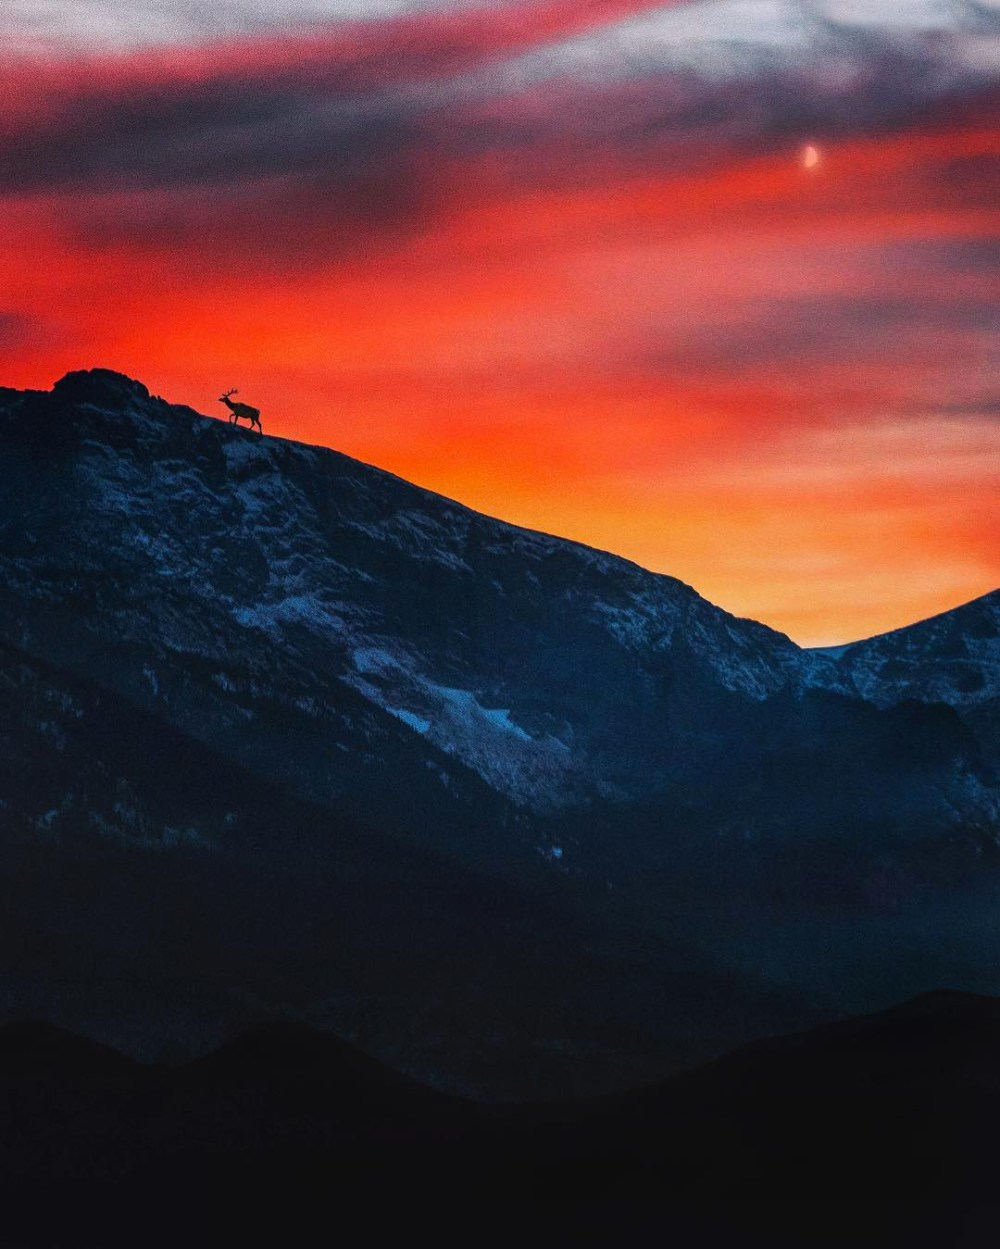 "Rocky Mountain National Park in Colorado encourages you to follow your wild spirit and see what's over the horizon. In any season, the views are epic and the experiences are unforgettable. Stopping to take a picture of one of the most beautiful sunsets he'd ever seen, photographer Brandon Sharpe noticed ""an elk doing his thing"" and snapped this incredible image. Photo by of Brandon Sharpe. Posted on Tumblr by the US Department of the Interior, 2/11/17."